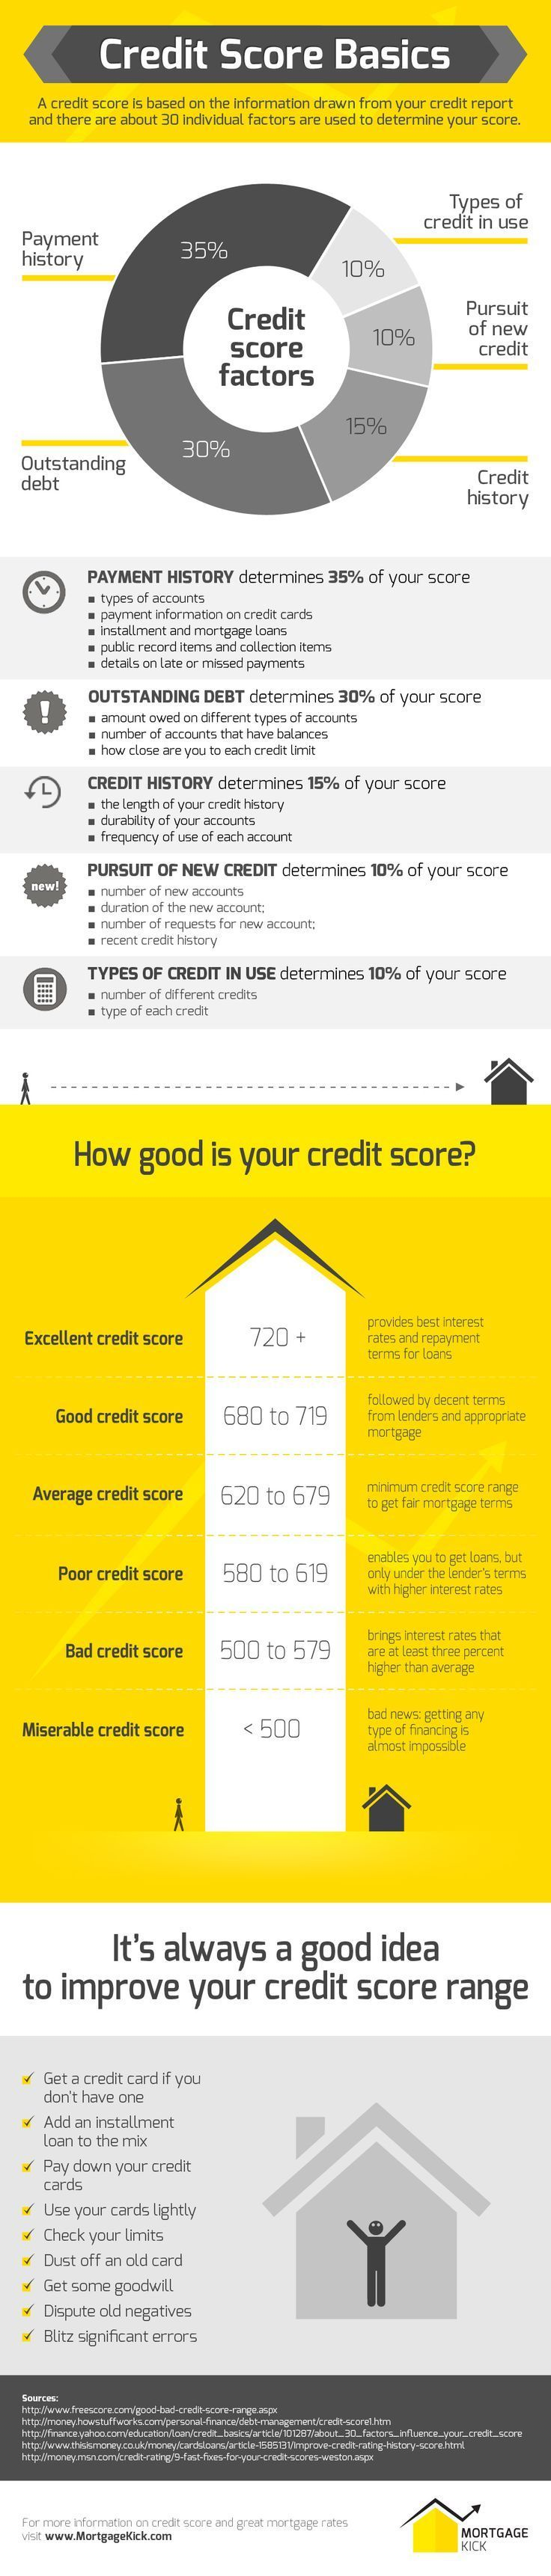 Credit Score Basics : Credit Score Is One Of The Most Important Factors  When Applying For